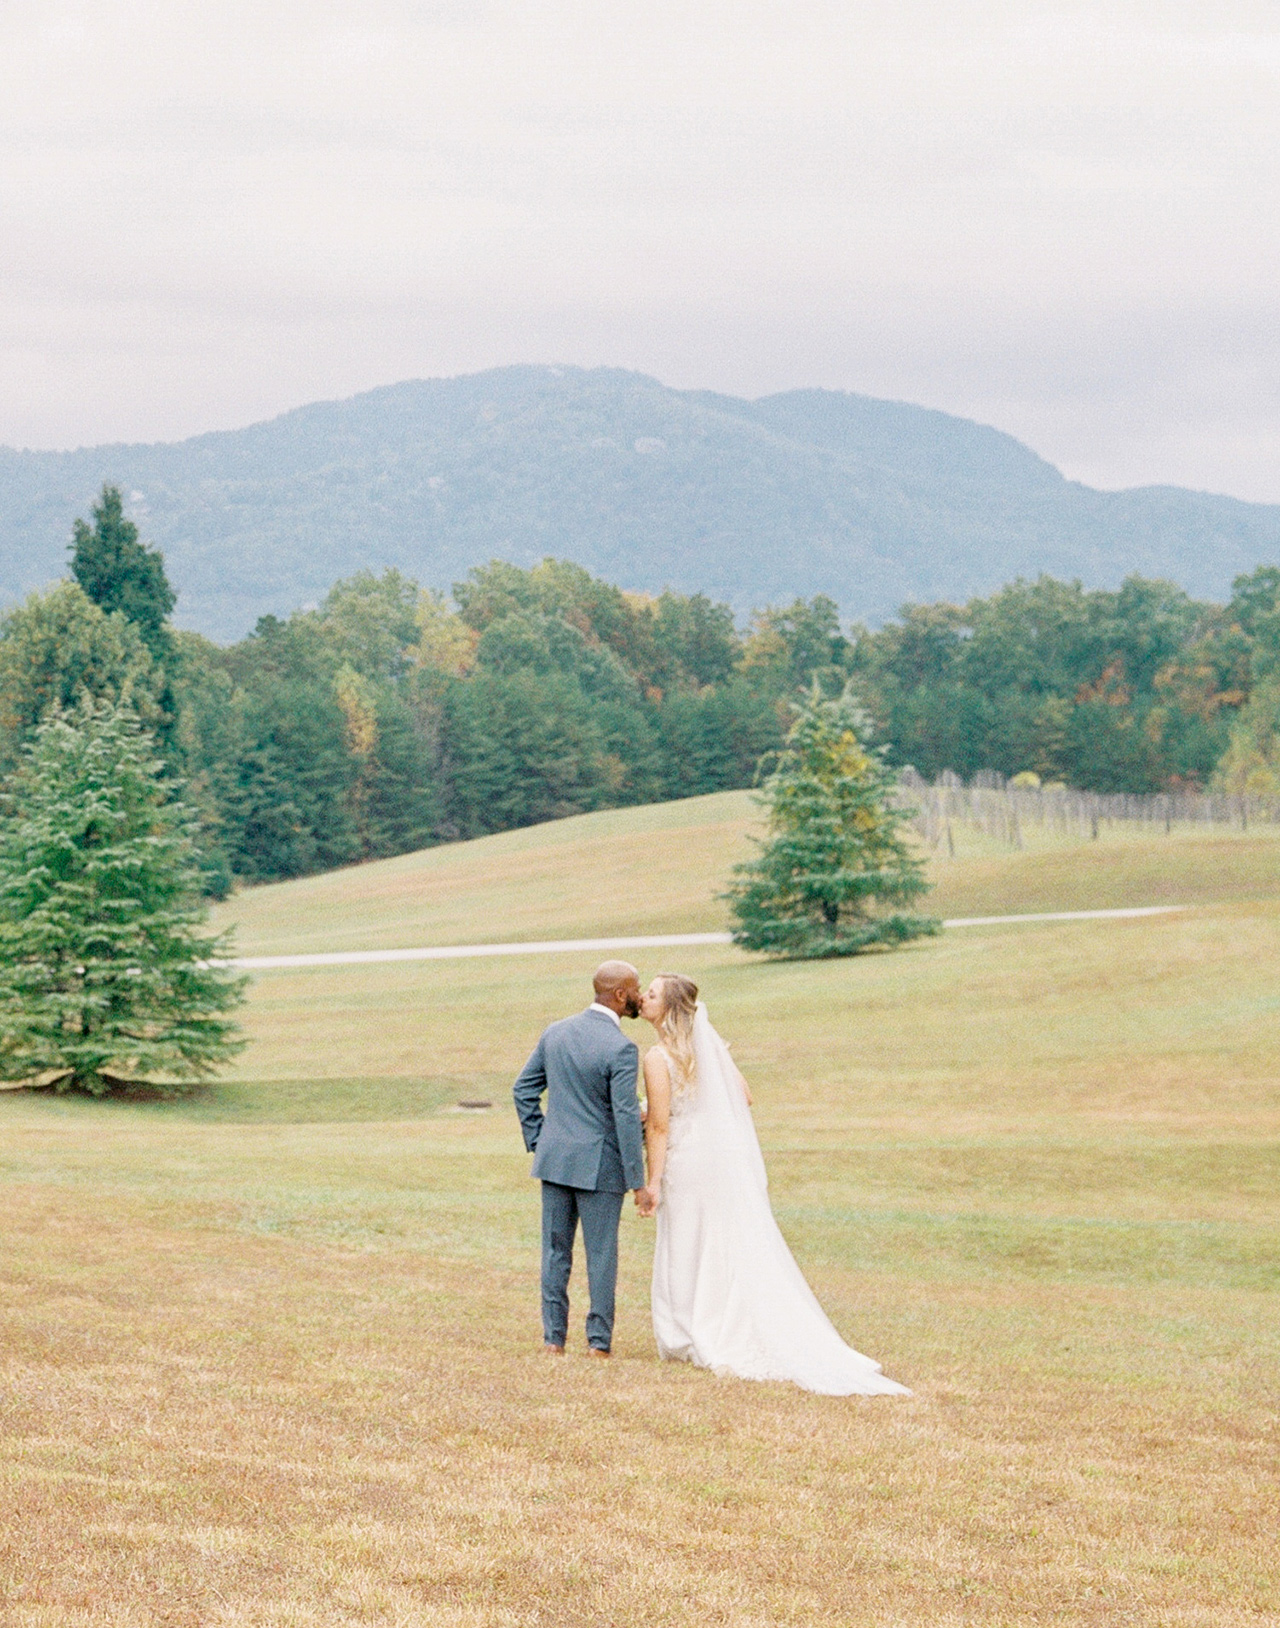 bride groom kiss outdoor wedding mountain wooded view